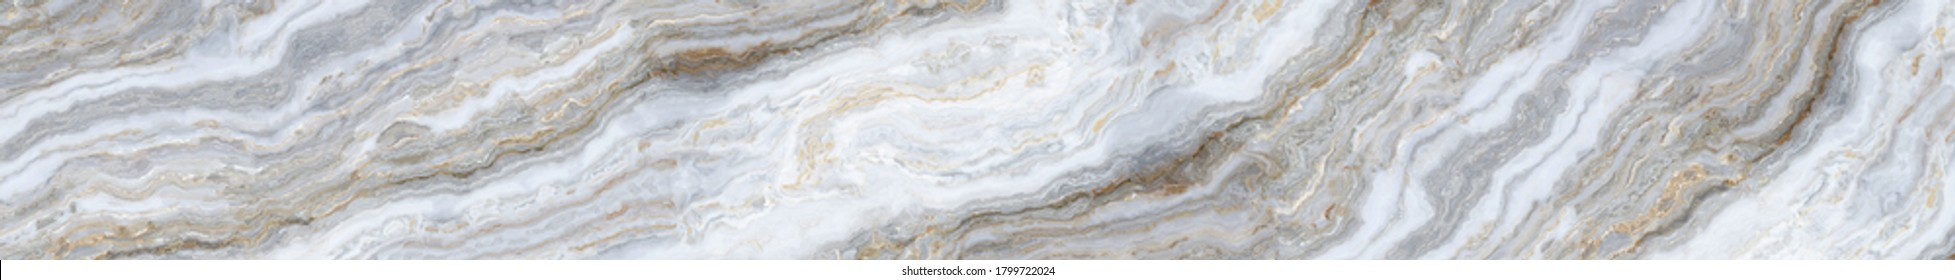 White marble pattern with curly grey and gold veins for ceramic tiles design. Abstract texture and background. 2D illustration